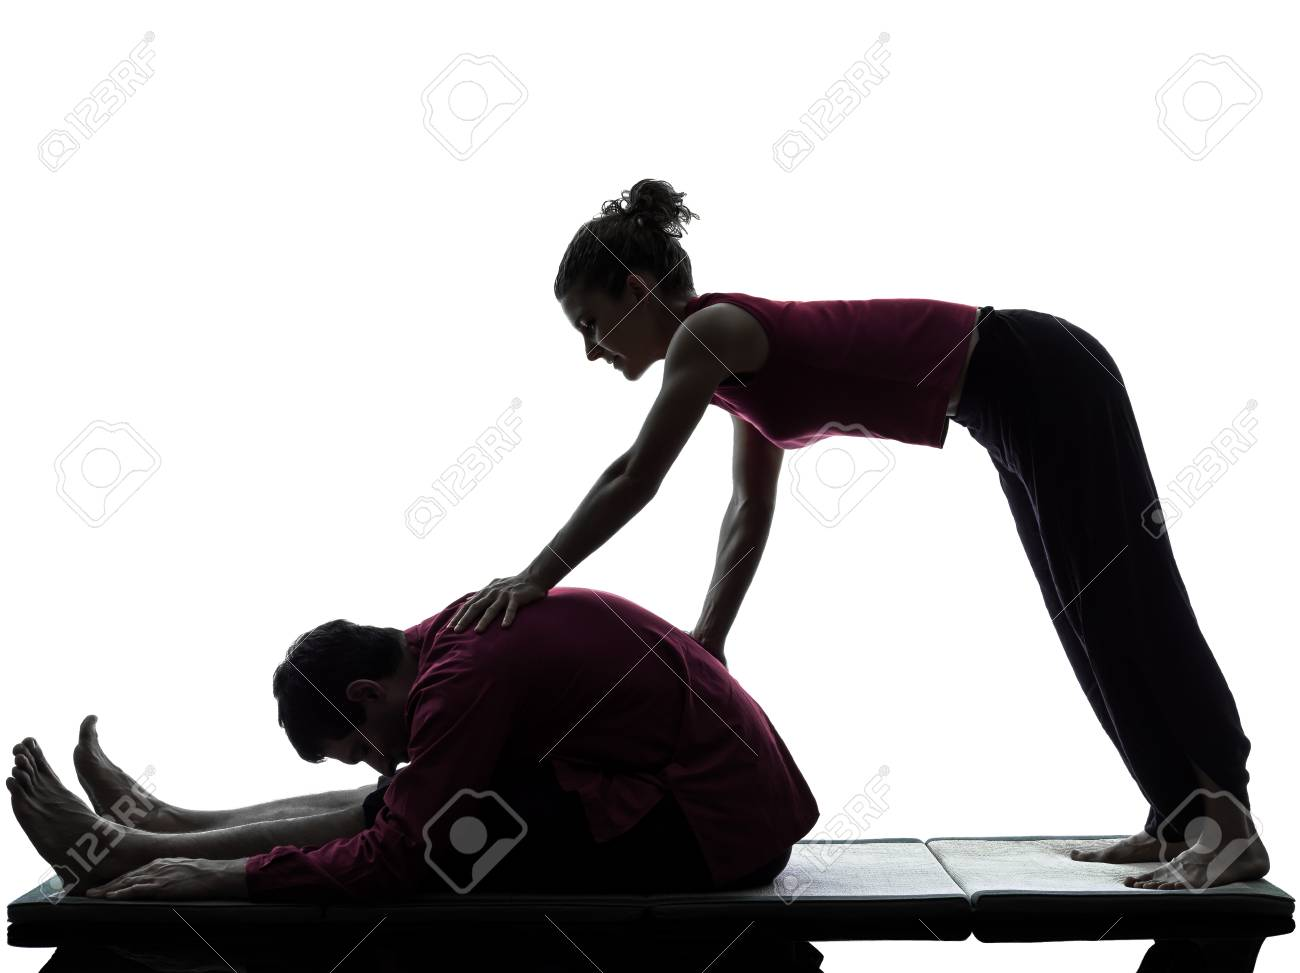 one man and woman perfoming thai massage in silhouette studio on white background Stock Photo - 16545410